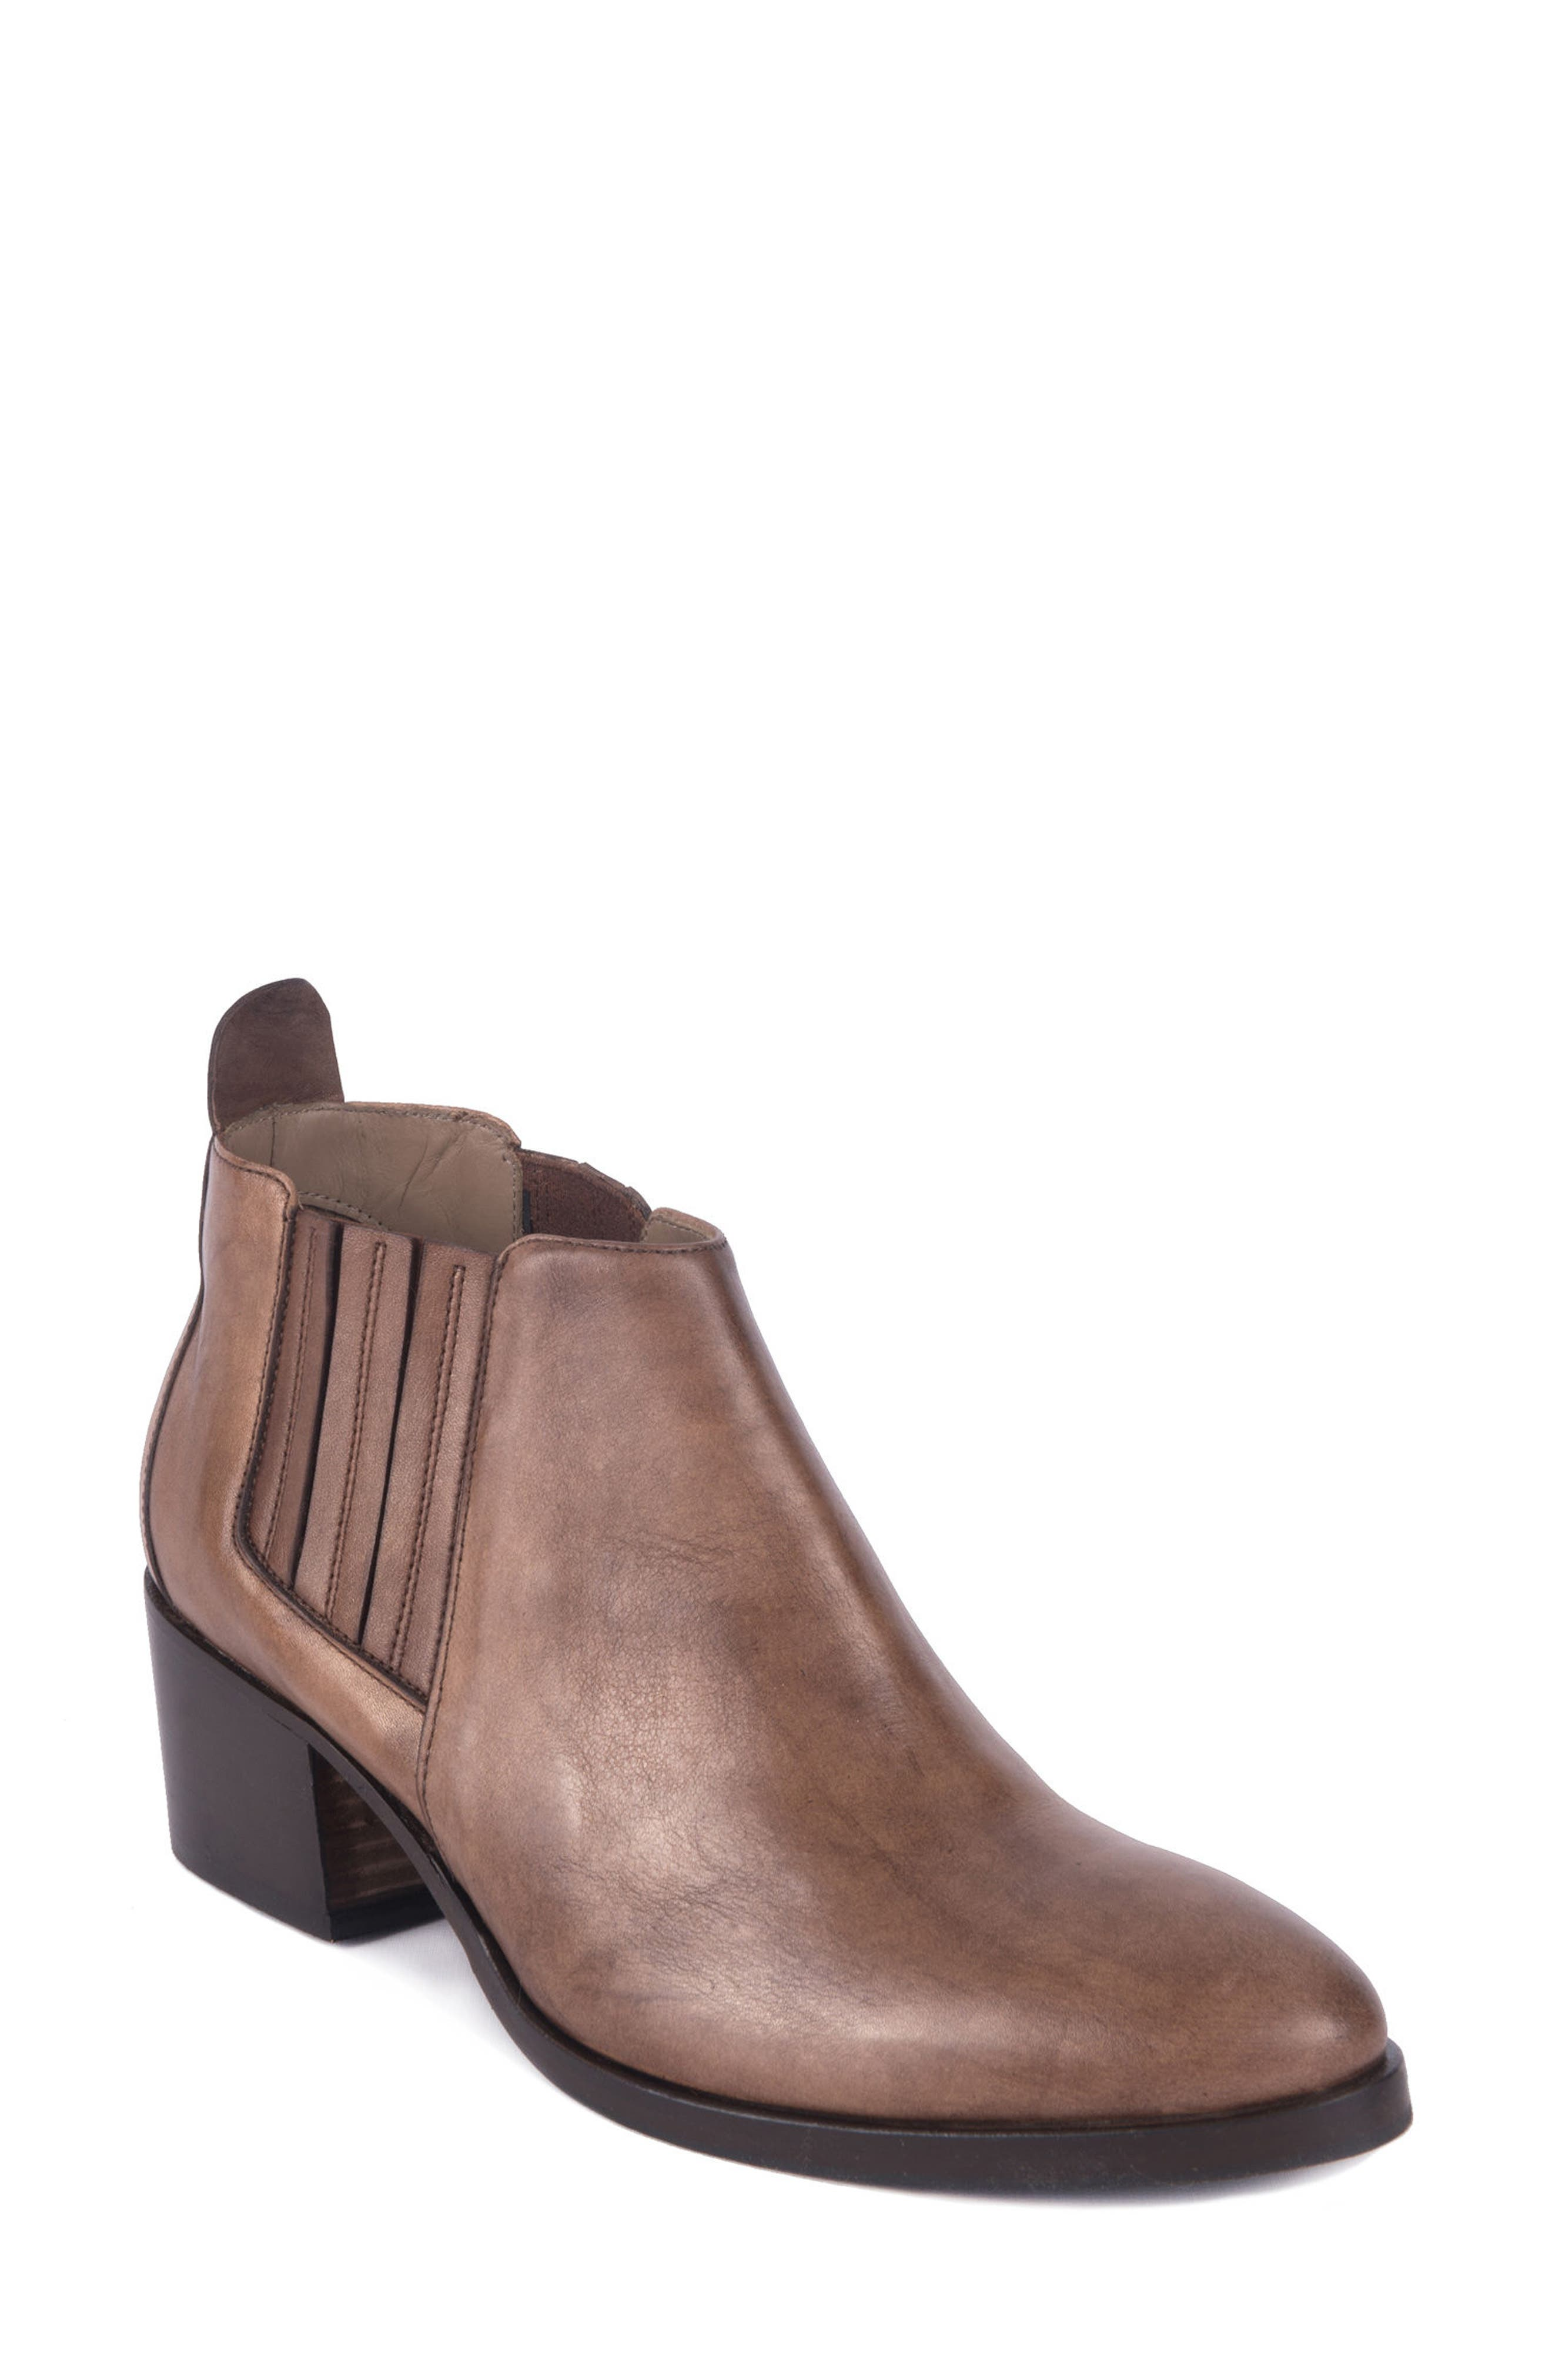 Corsini Water-Resistant Pull On Bootie,                         Main,                         color, Marrone Leather